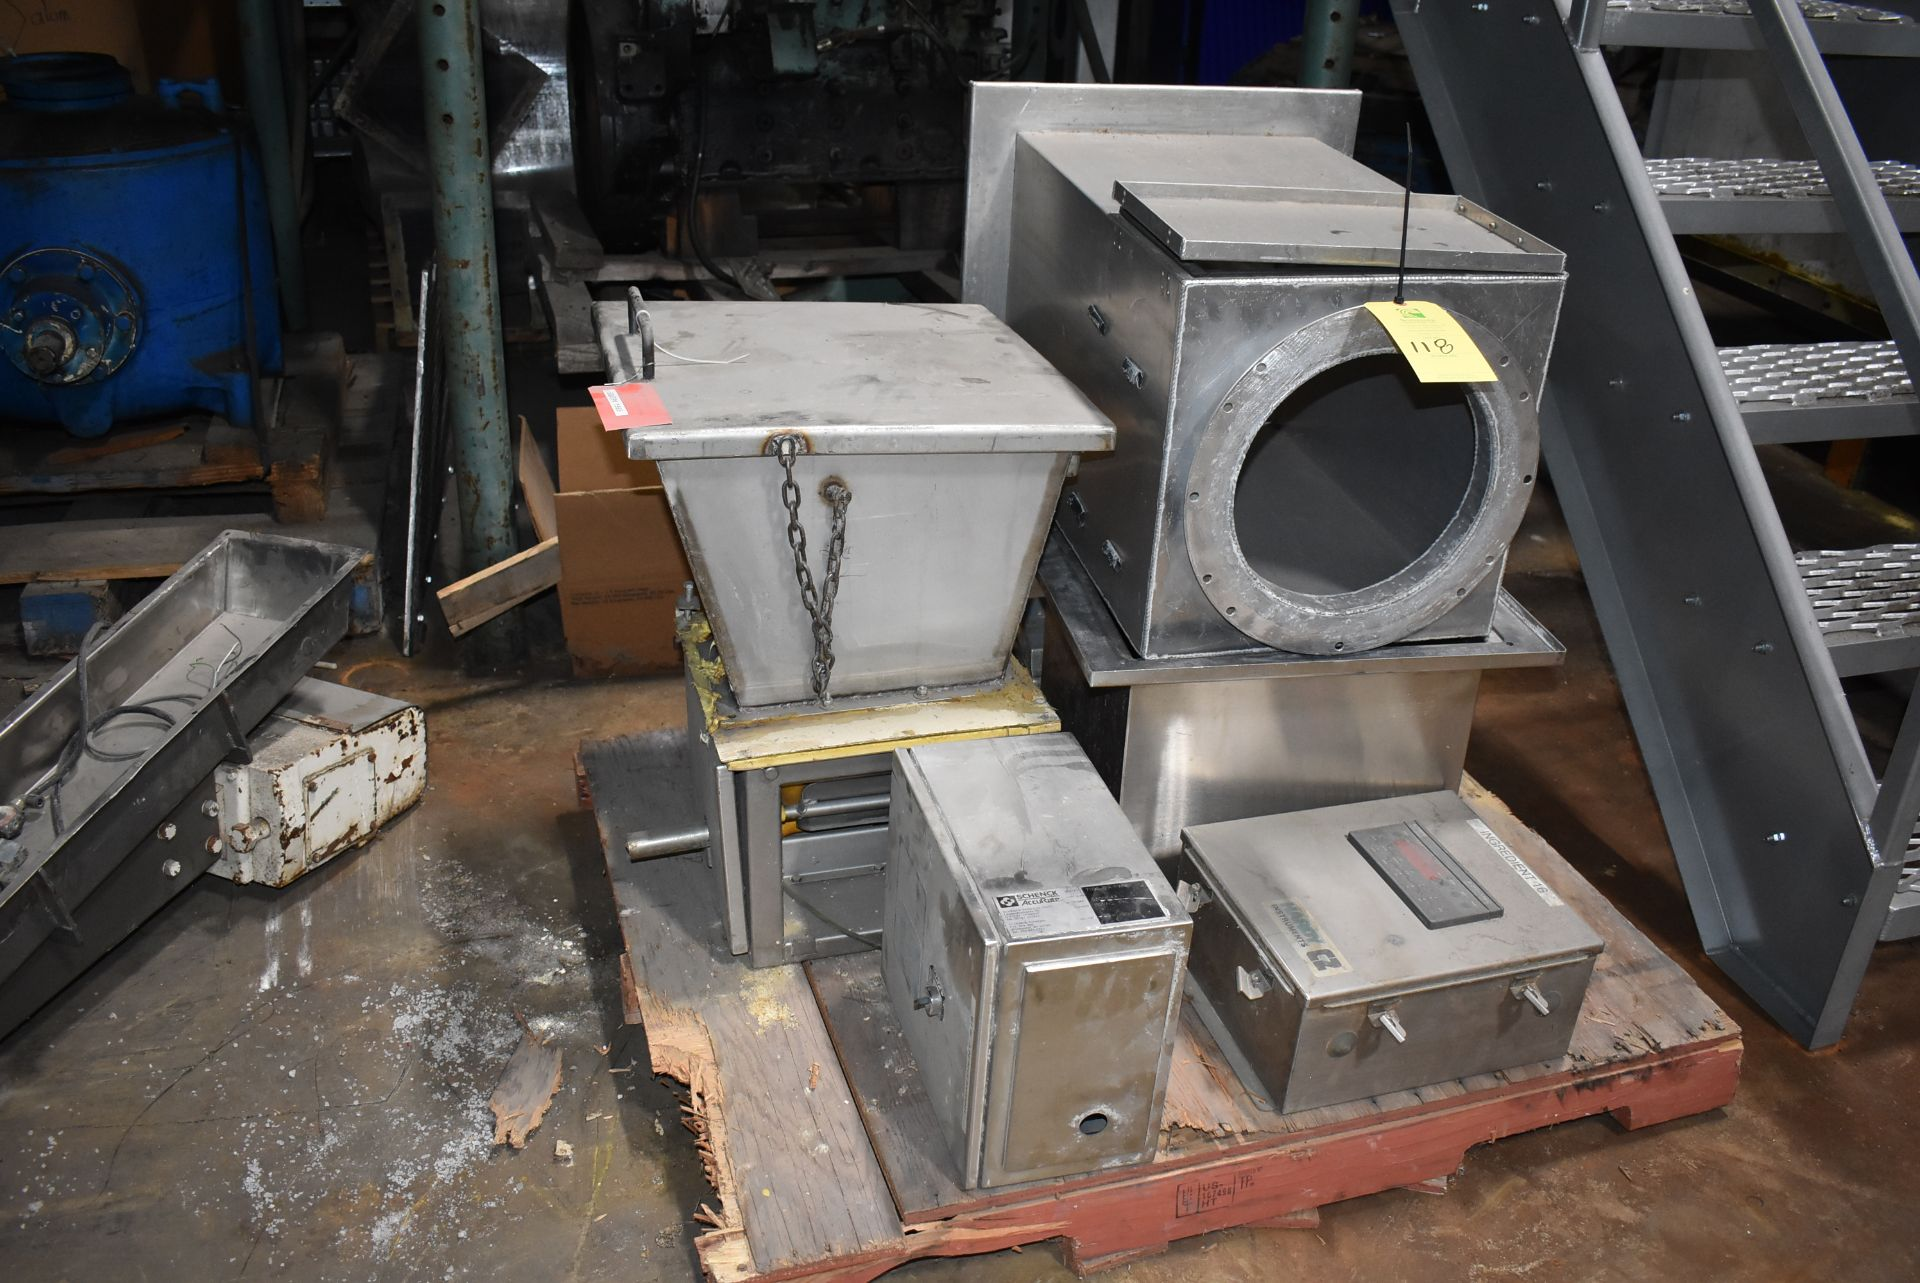 Schenck/Accrate Hopper, Feeder, and Hardy Instruments Control